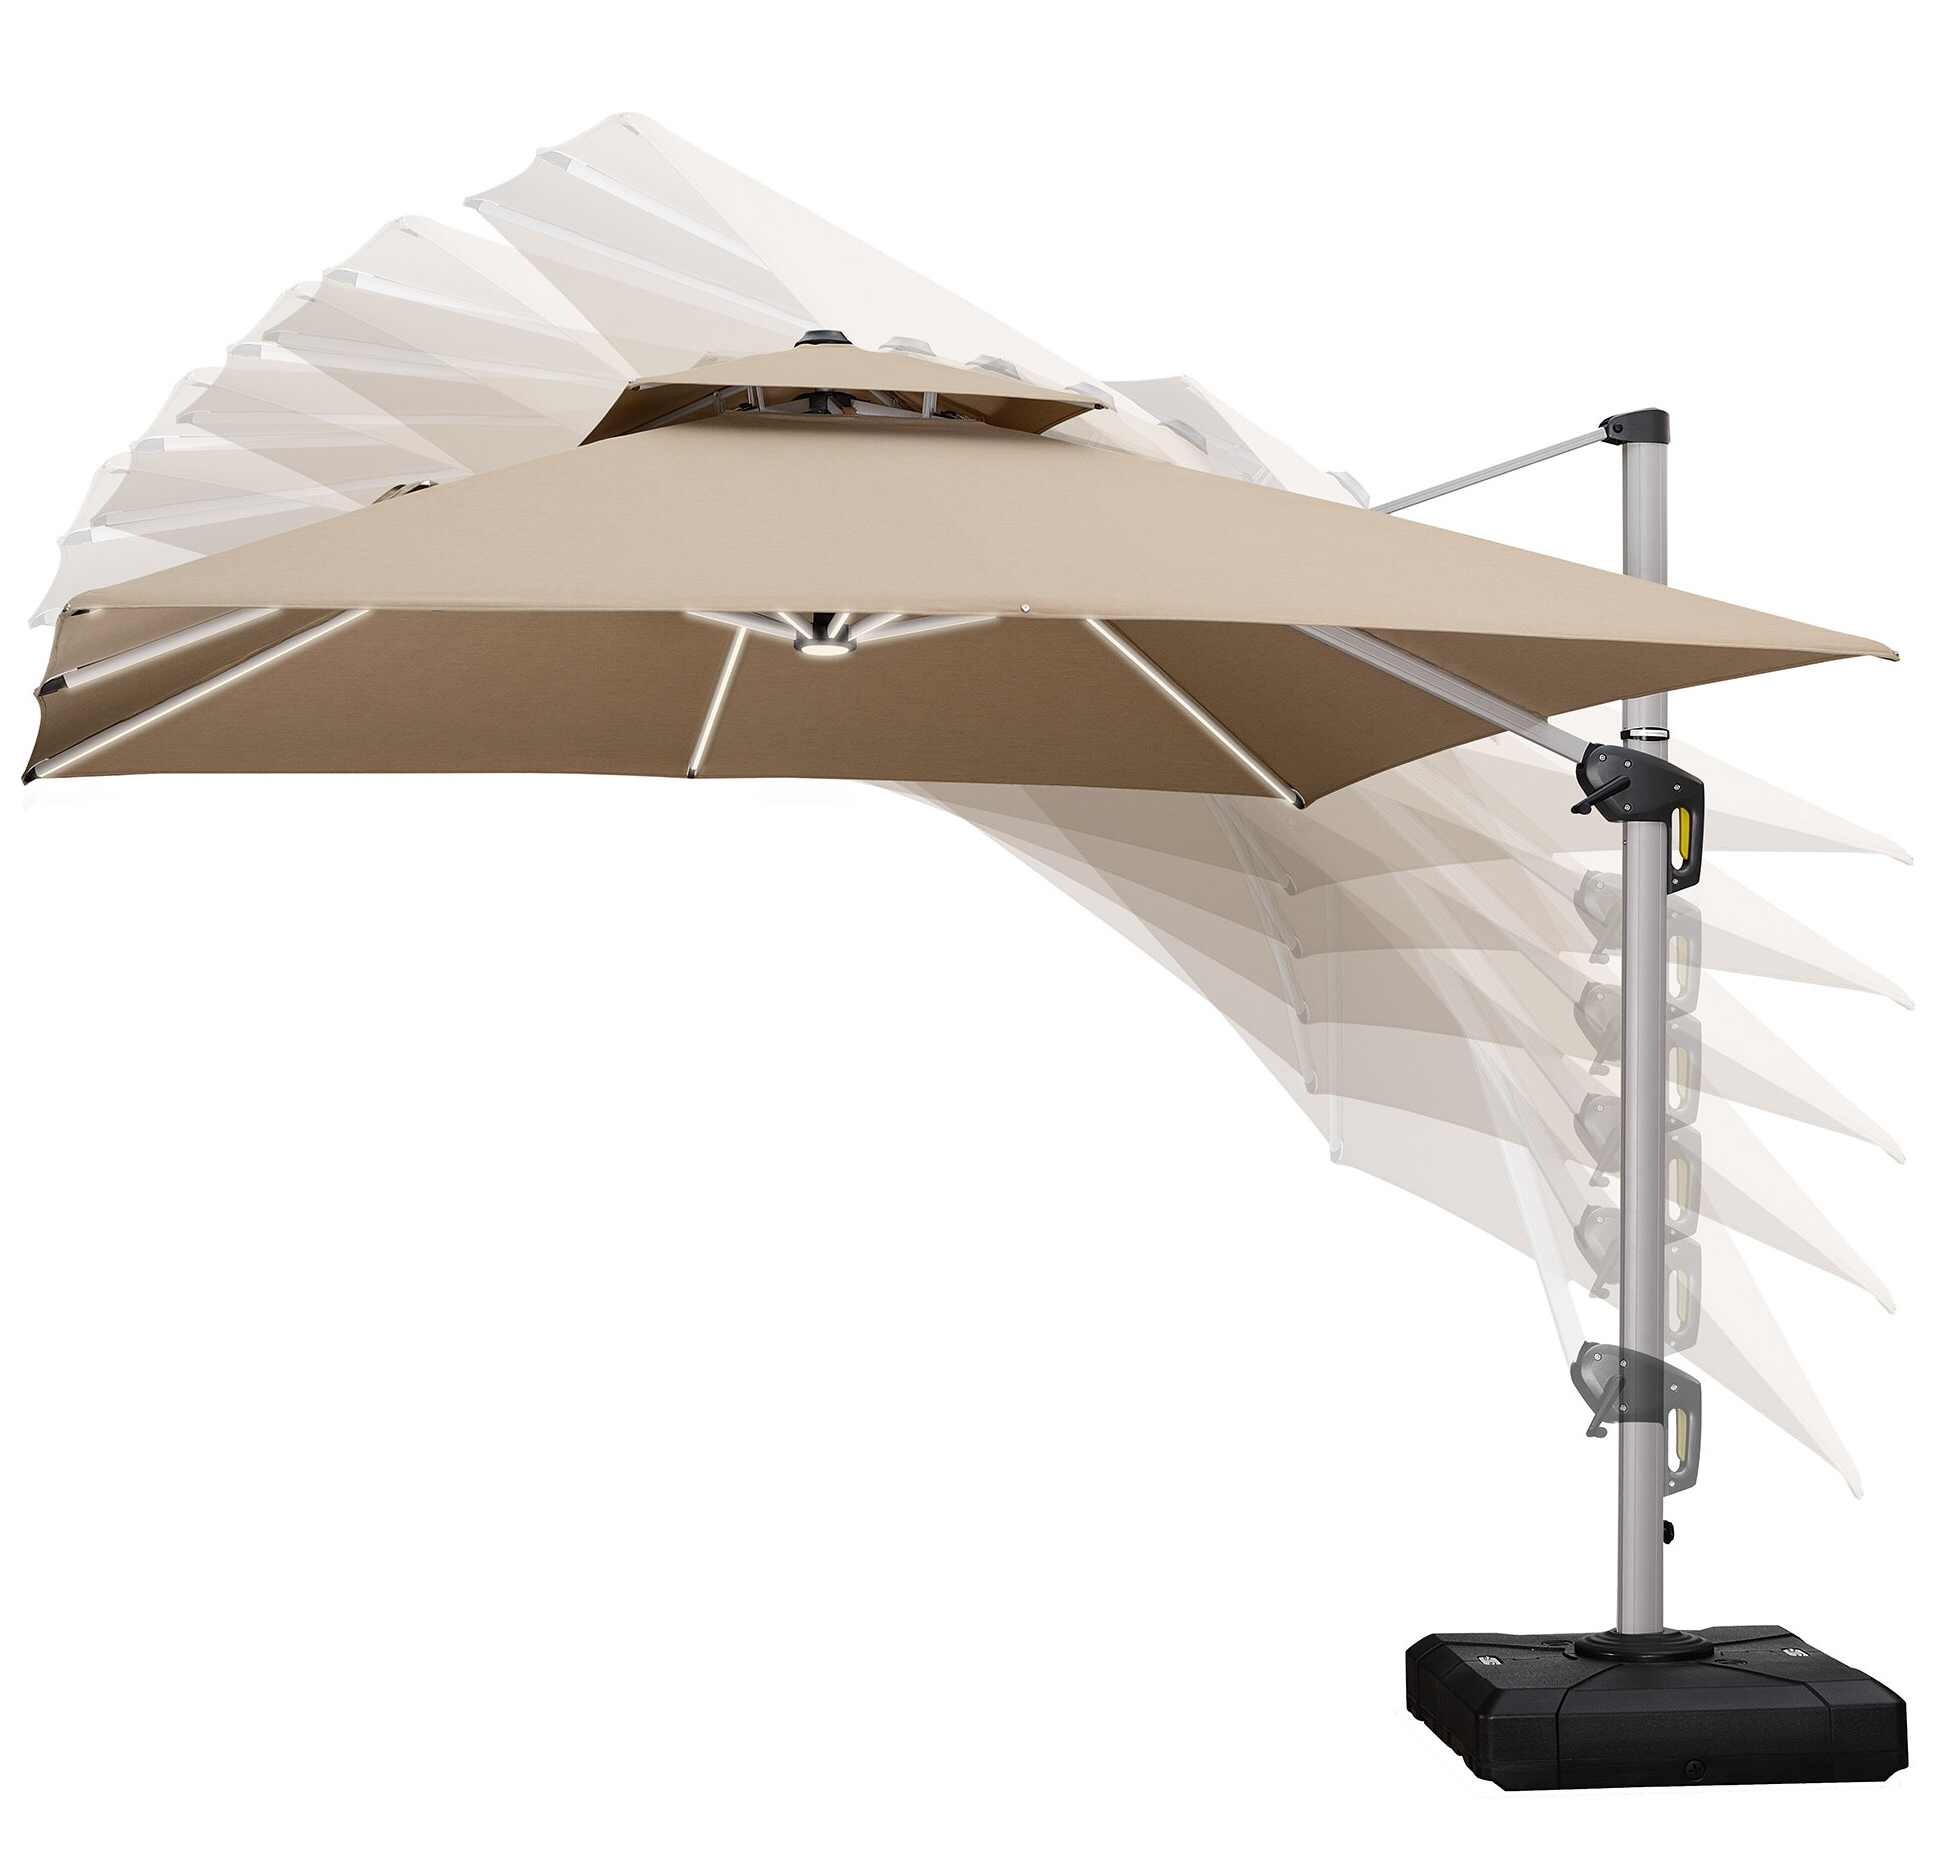 Desmond Rectangular Cantilever Umbrellas Within Well Known Dermott 10' Square Cantilever Umbrella (View 5 of 20)